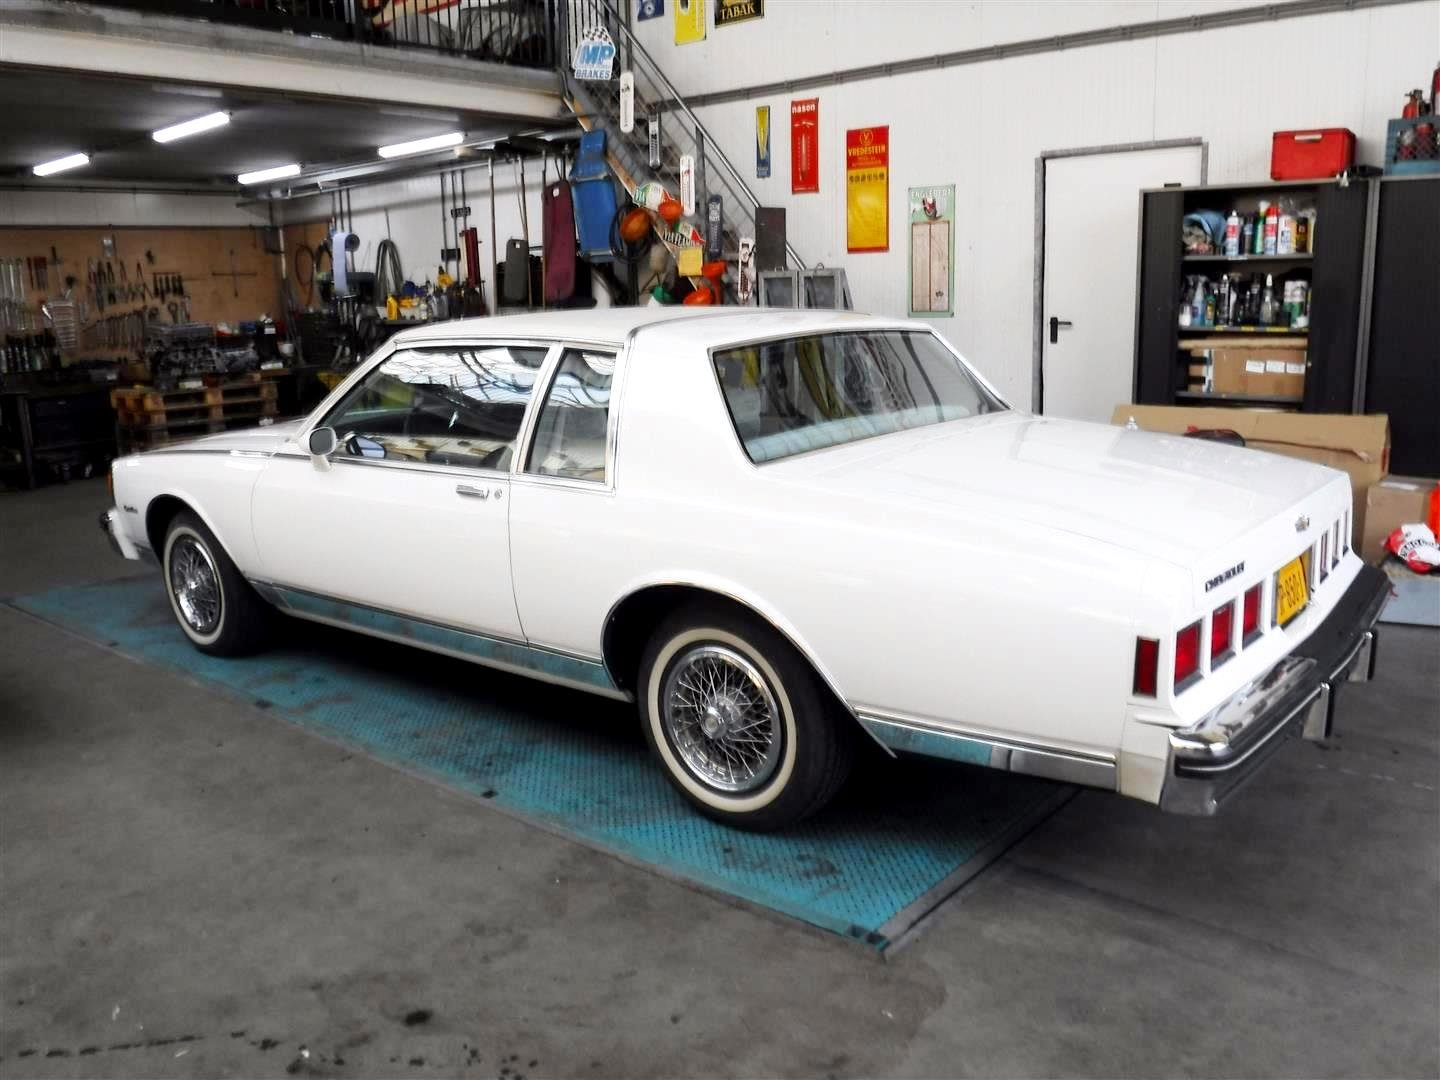 Chevrolet Caprice Classic V8 1984 For Sale (picture 2 of 6)